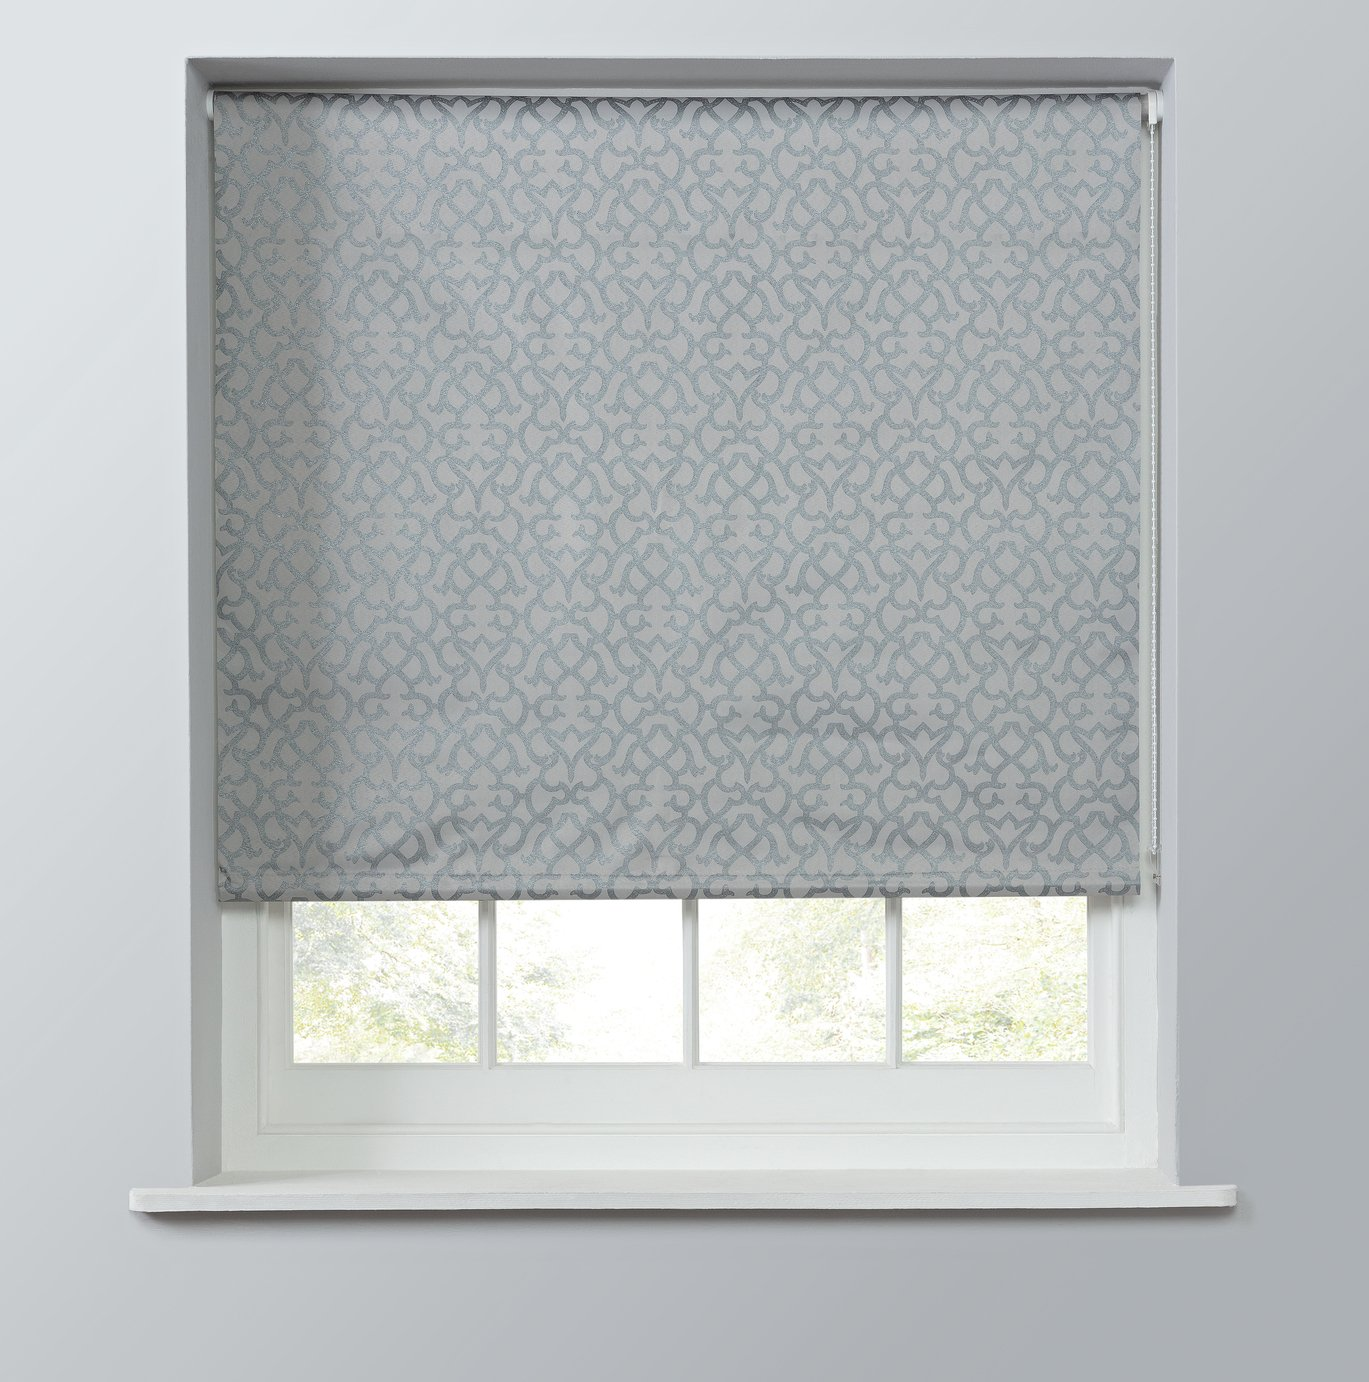 Argos Home Metallic Geo Daylight Roller Blind - 6ft - Silver